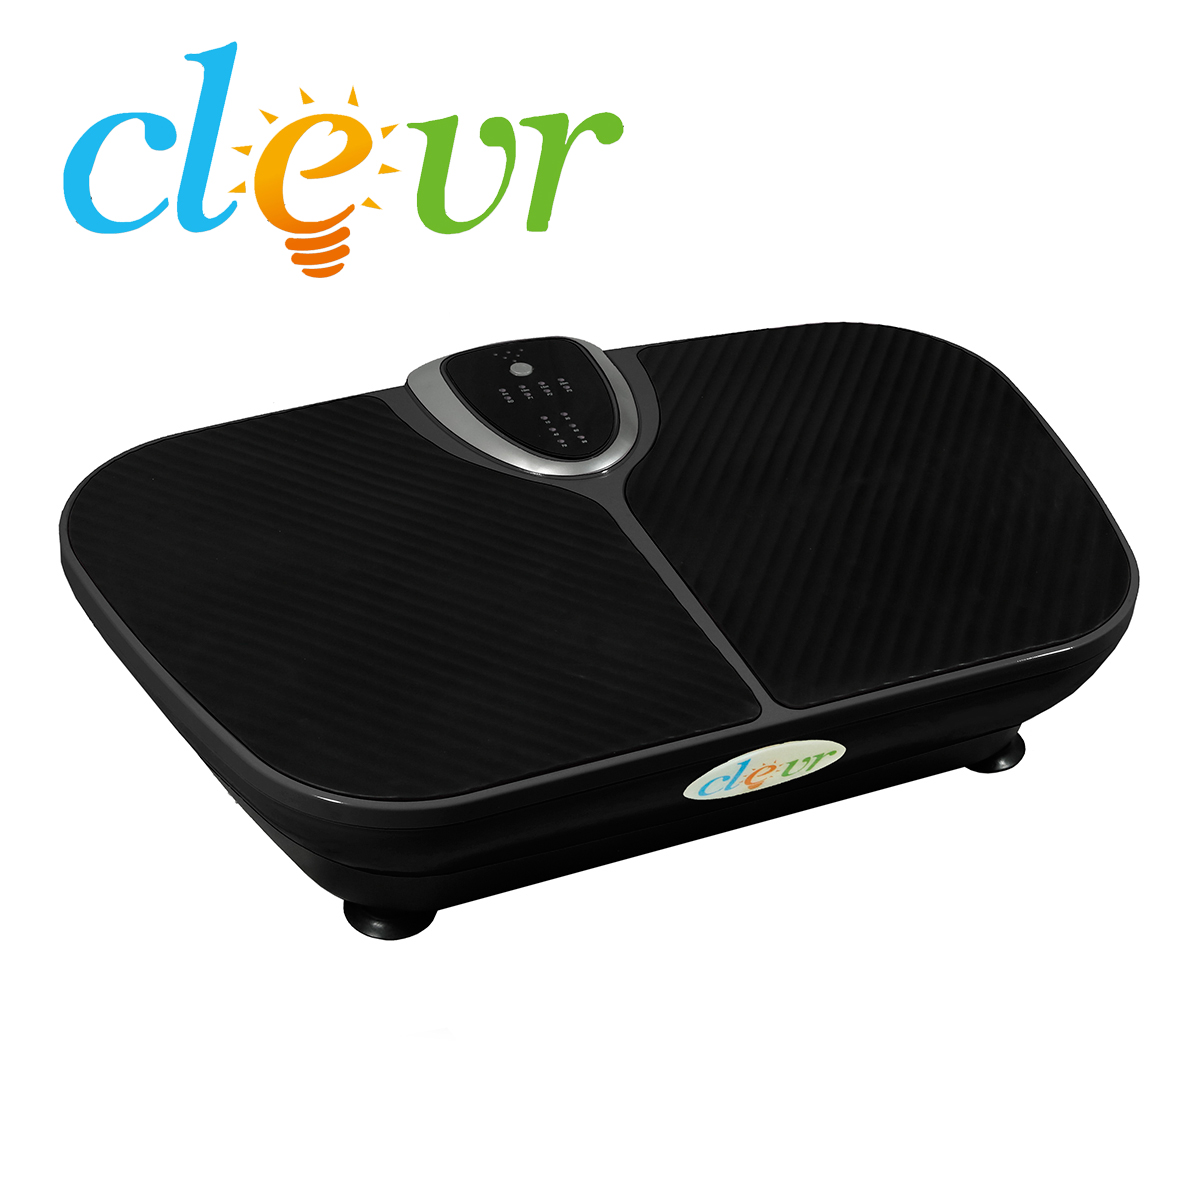 Clevr Crazy Fit Full Body Vibration Platform Massage Machine